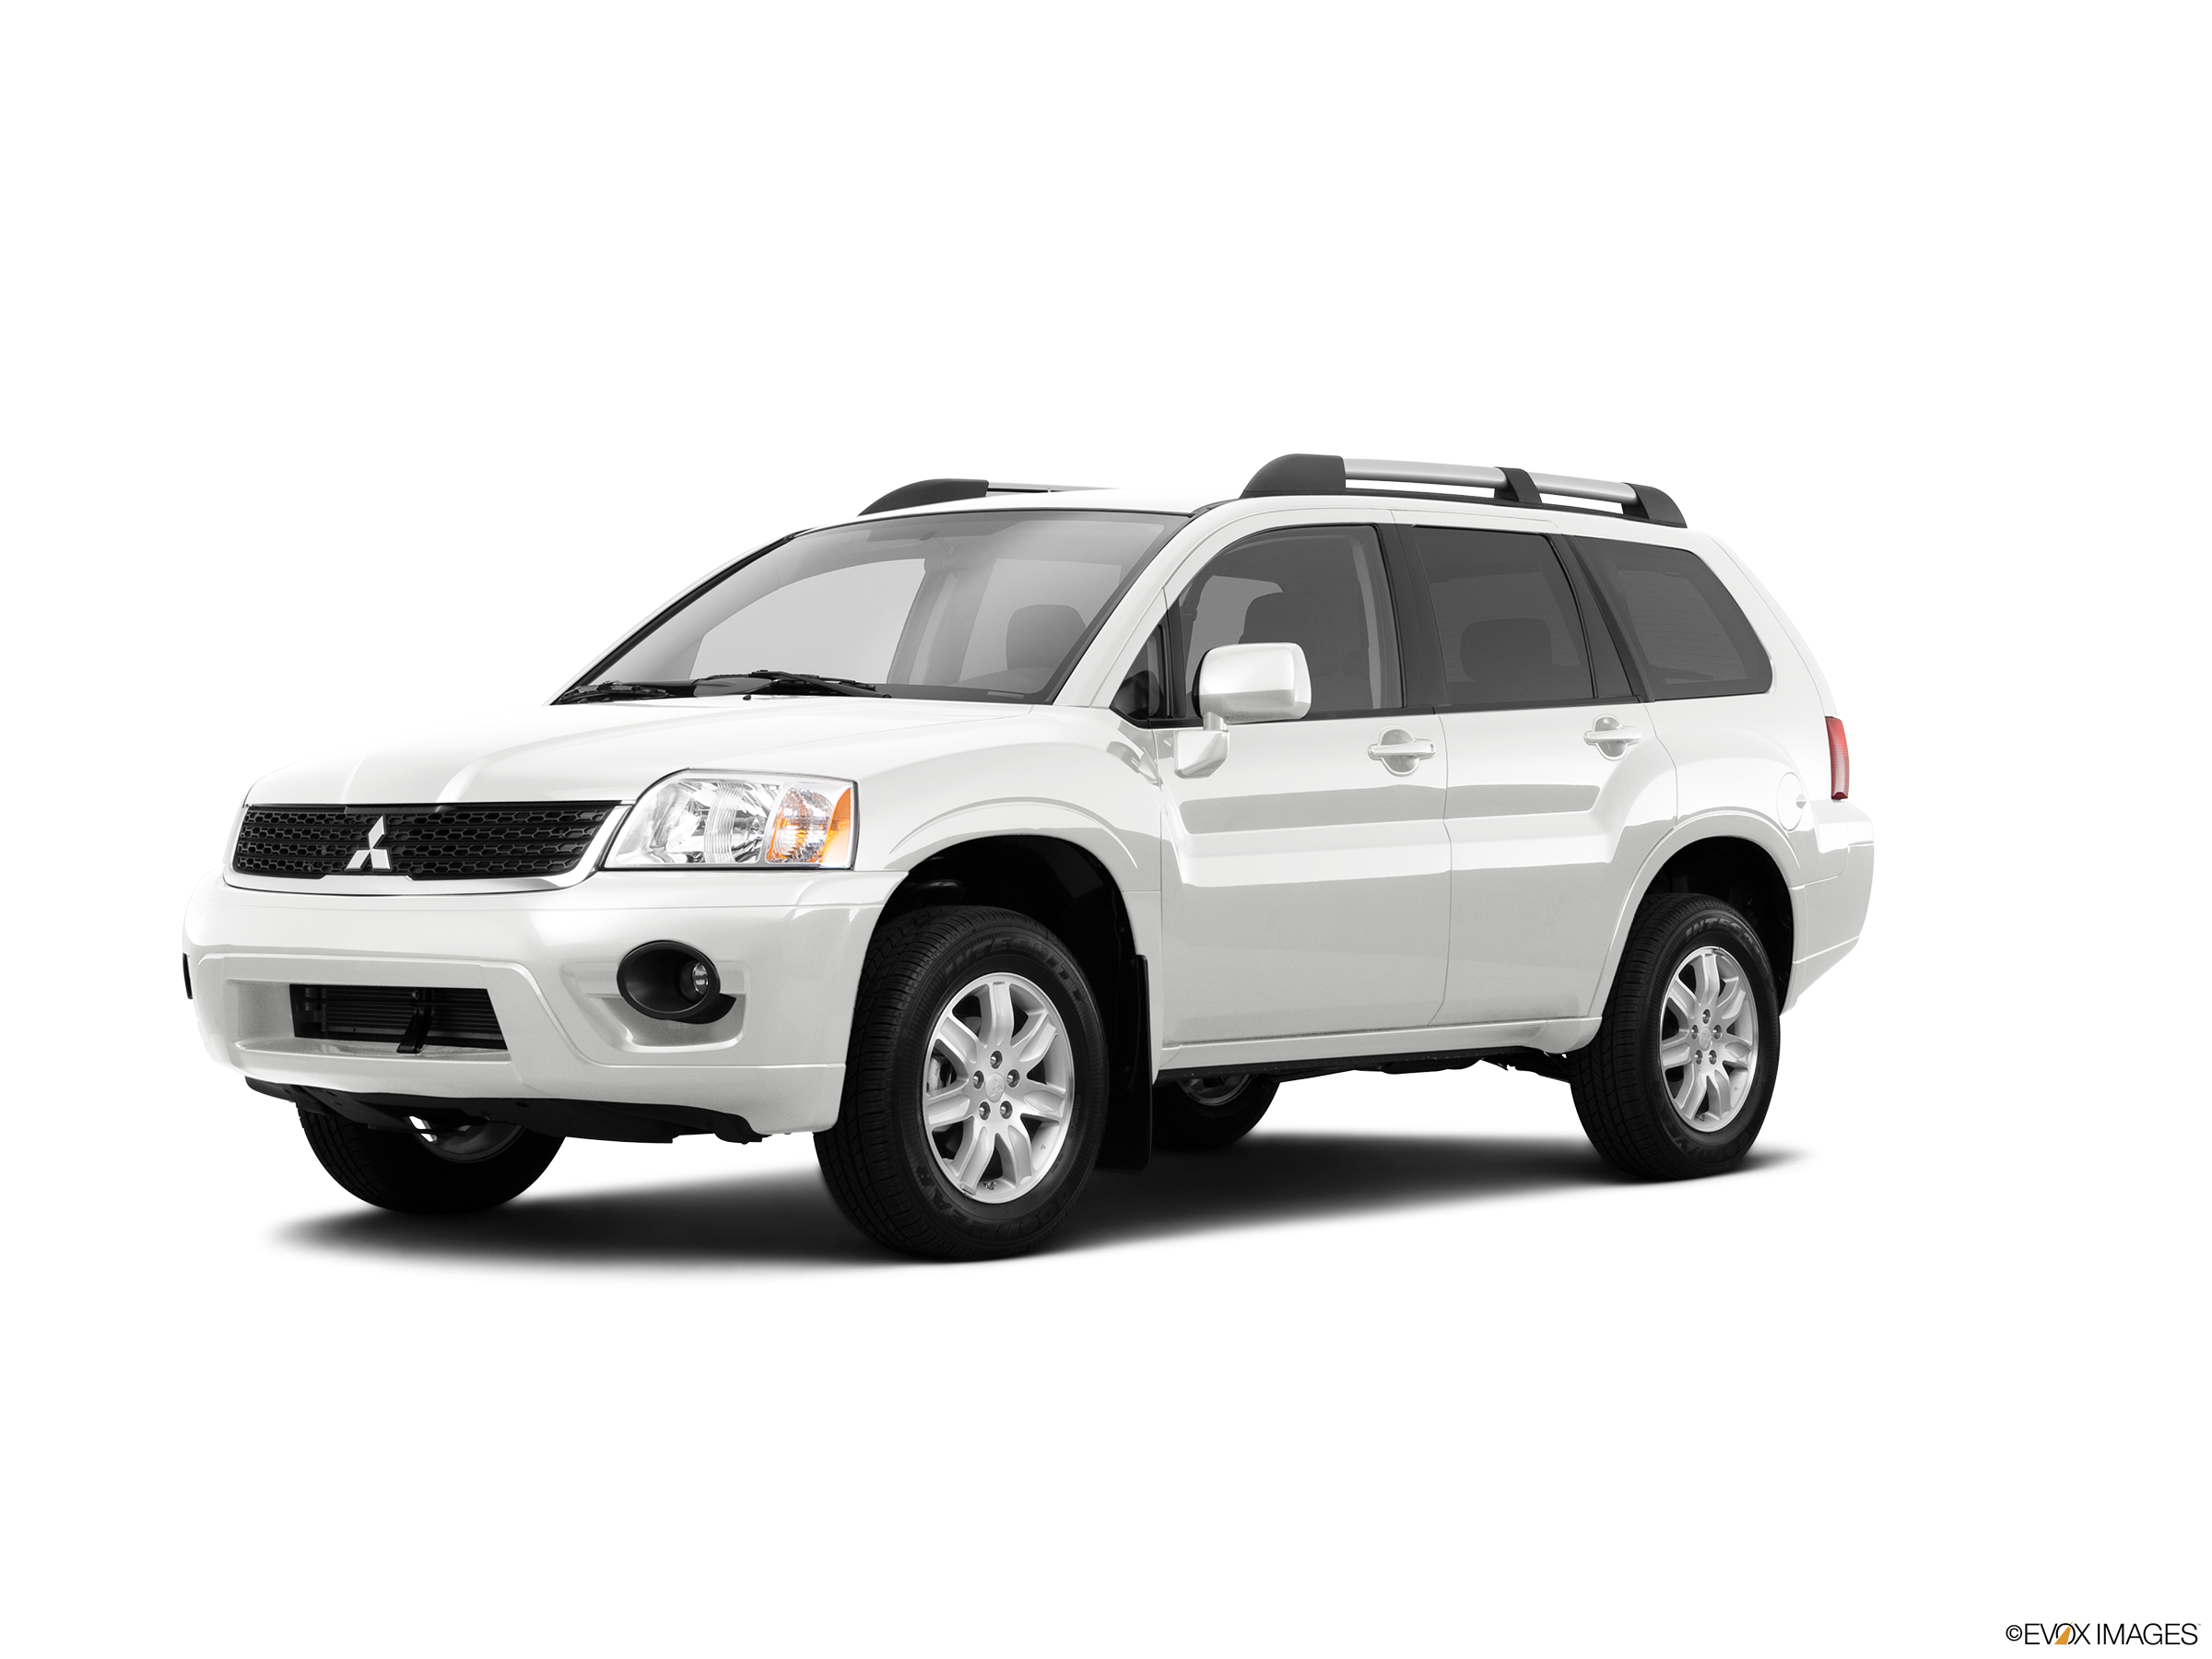 2011 Mitsubishi Endeavor Values Cars For Sale Kelley Blue Book